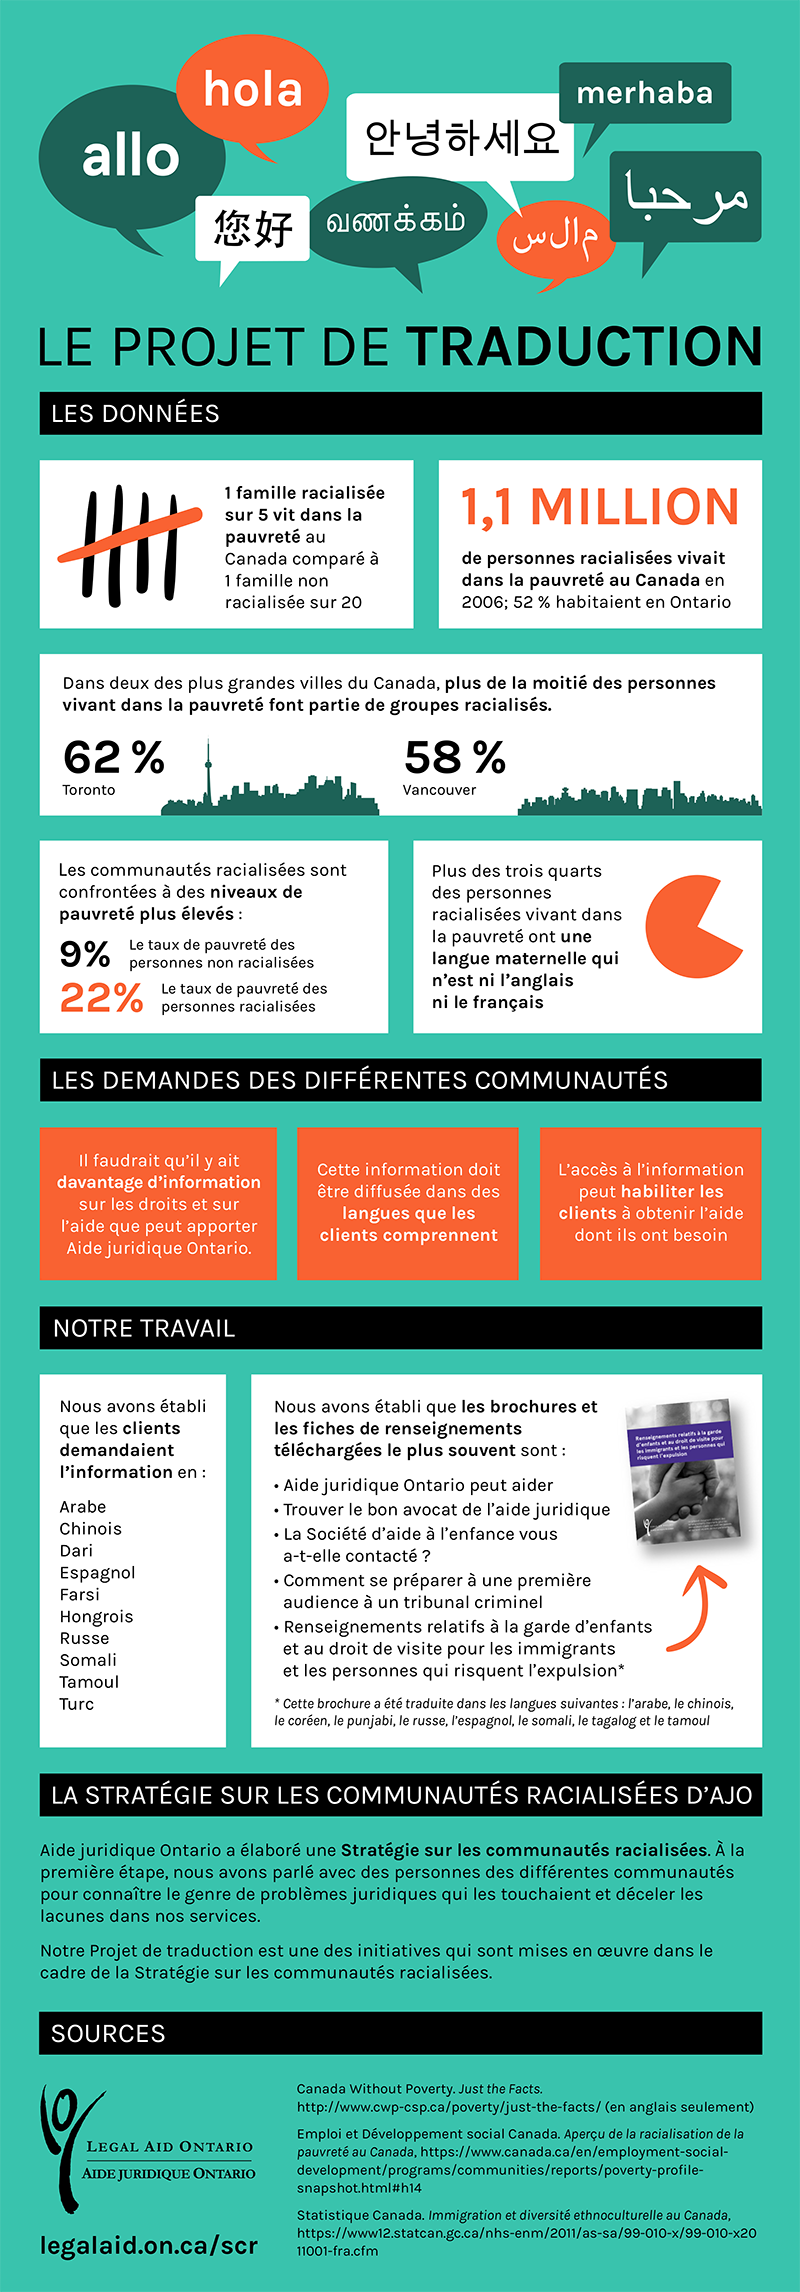 Click on the image for a PDF version of the infographic